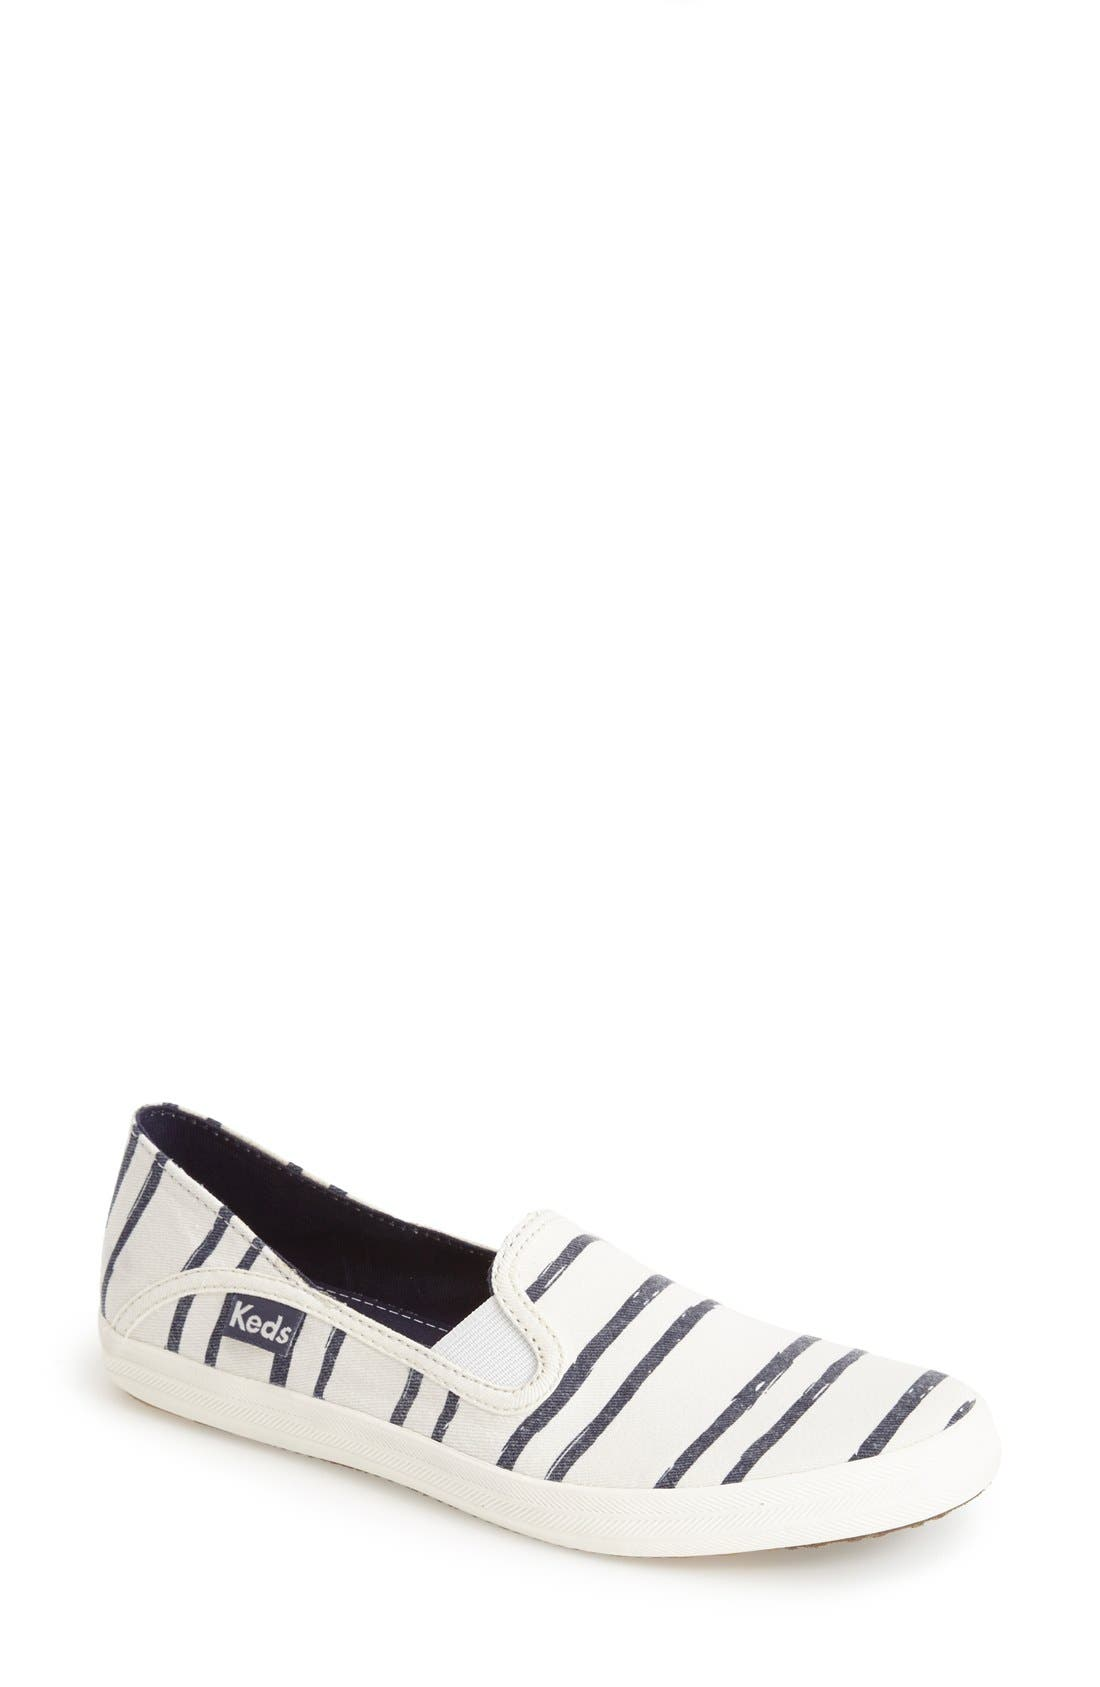 Alternate Image 1 Selected - Keds® 'Crashback - Washed Beach Stripe' Slip-On Sneaker (Women)